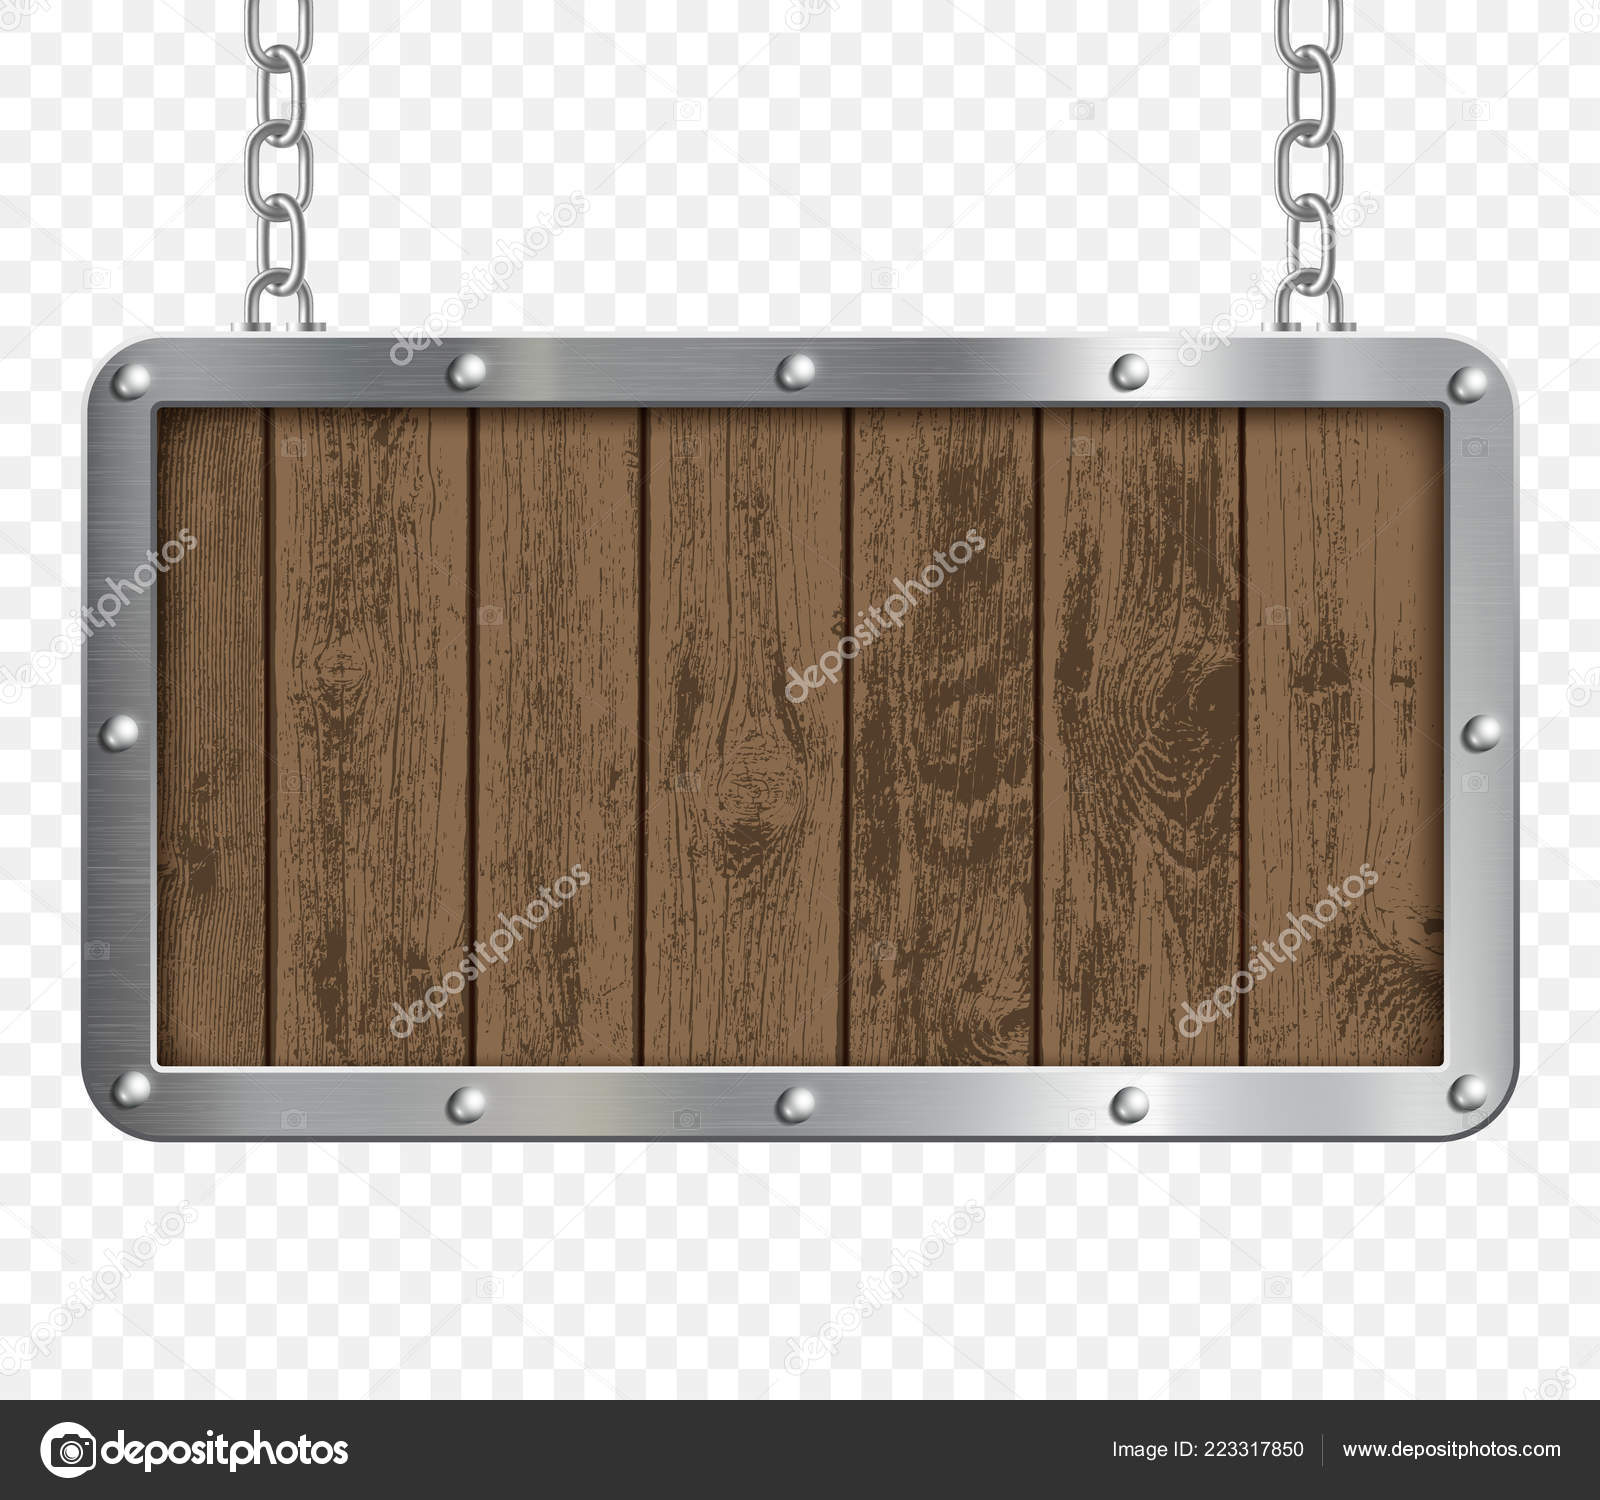 Retro Signboard Made Metal Wood Hanging Chain Transparent